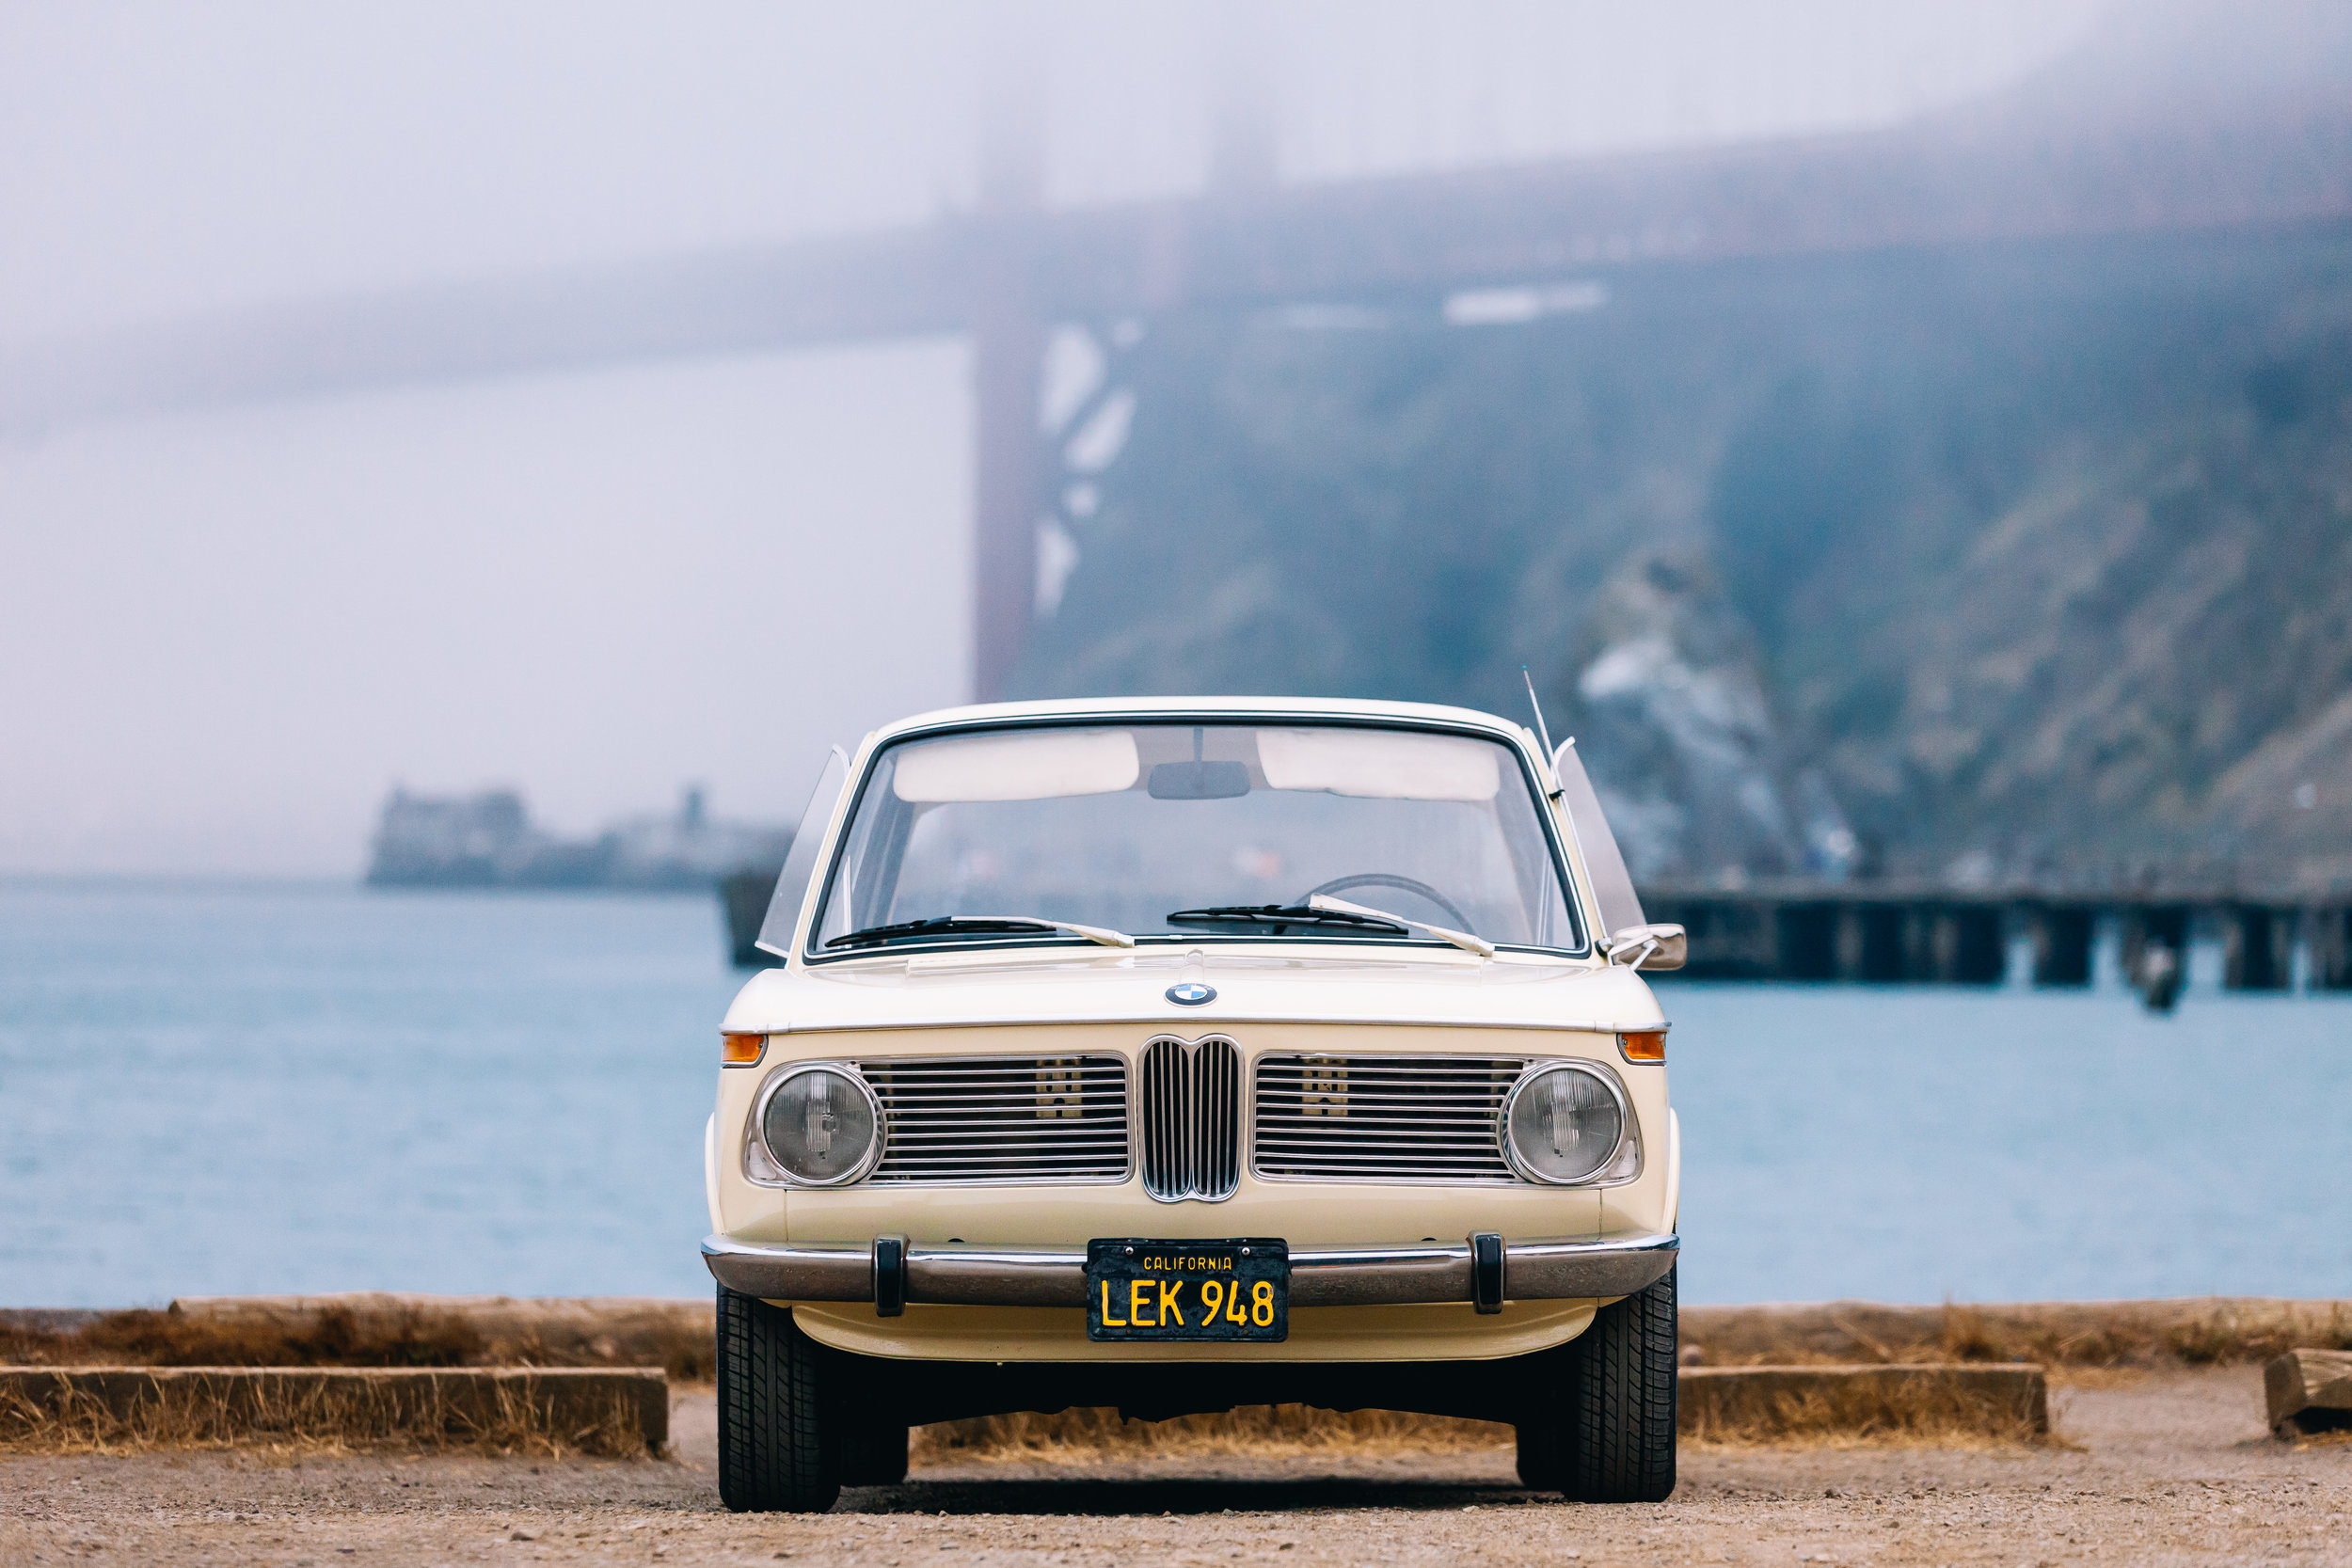 BMW-1600-SanFrancisco-186.jpg